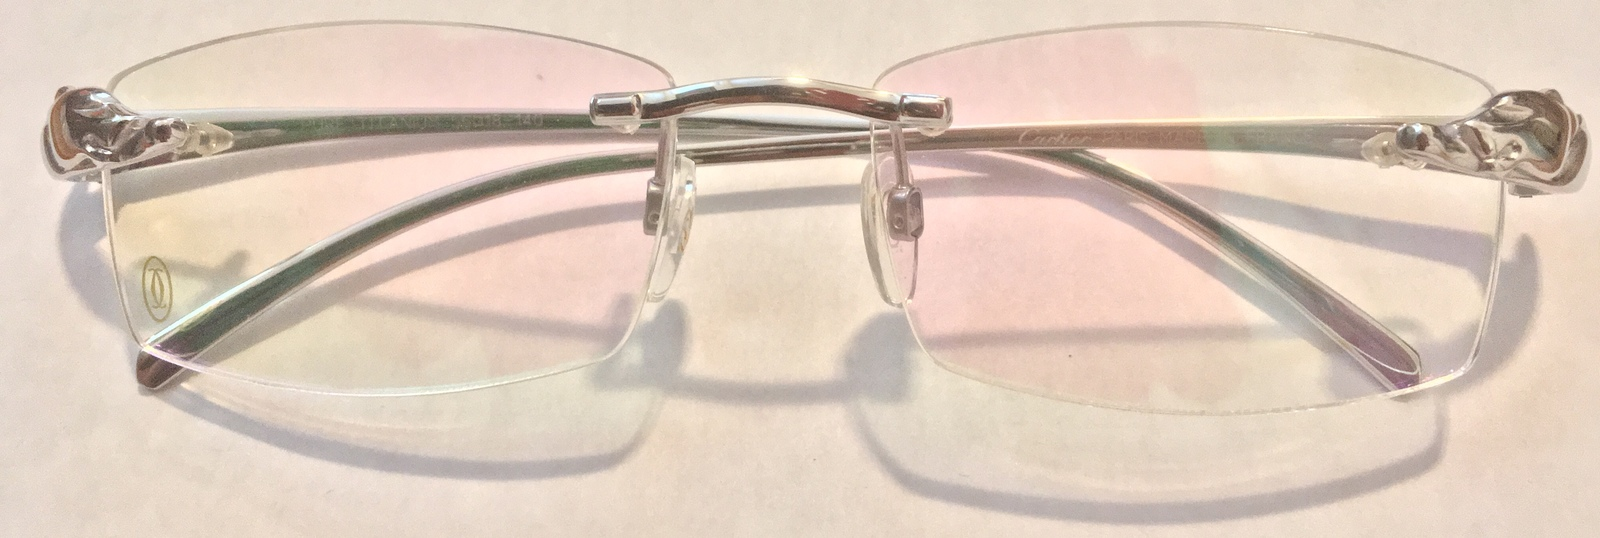 e2fcfefca2 PANTHÈRE Cartier Titanium Silver Rimless and 50 similar items. Img 1374